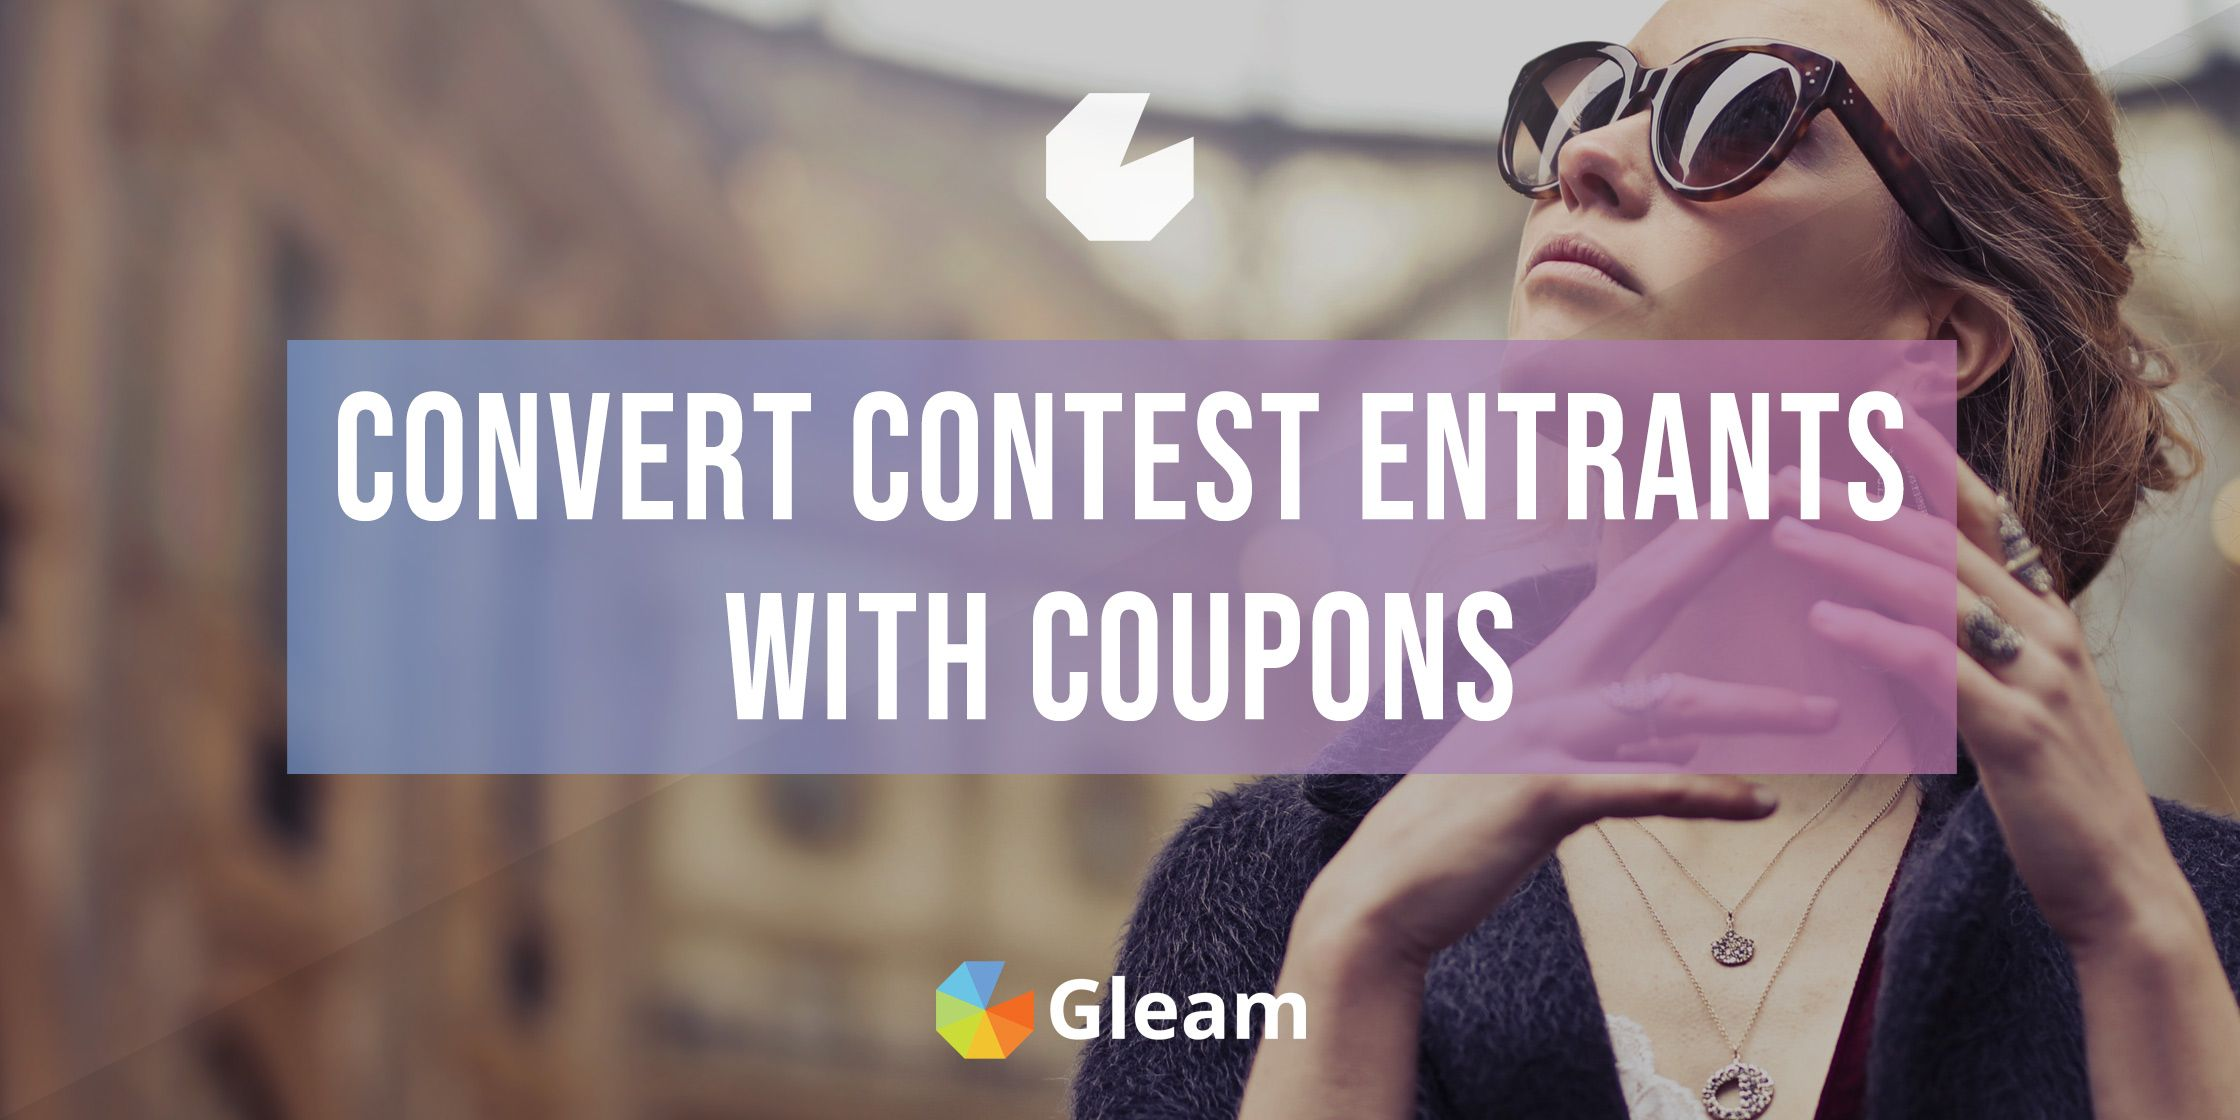 Using Coupons to Drive Sales From Contest Entrants